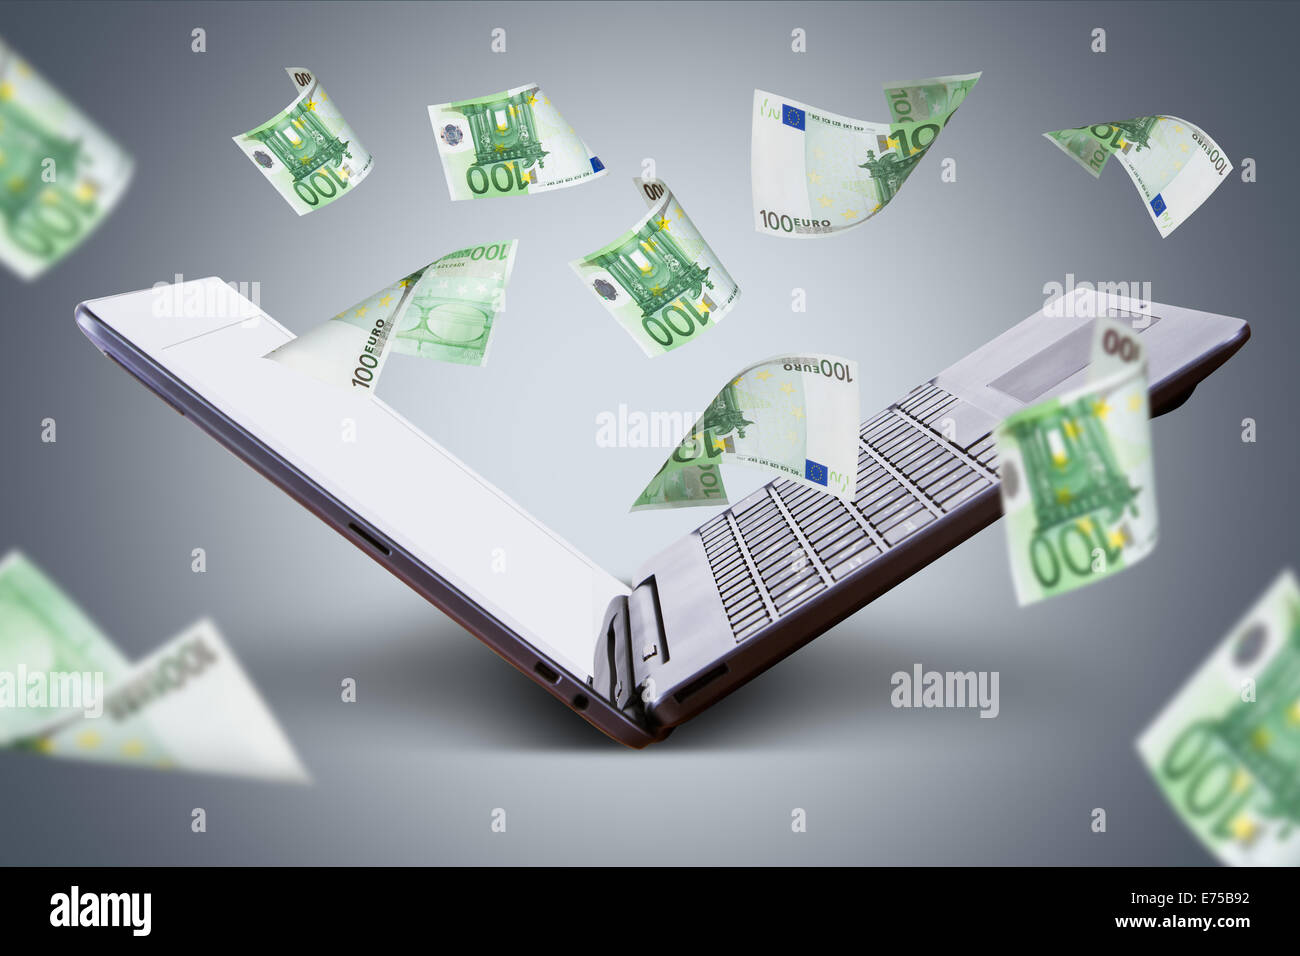 Finance and earning concept, one hundred euro banknotes flying around laptop, internet, side view on dark background. - Stock Image